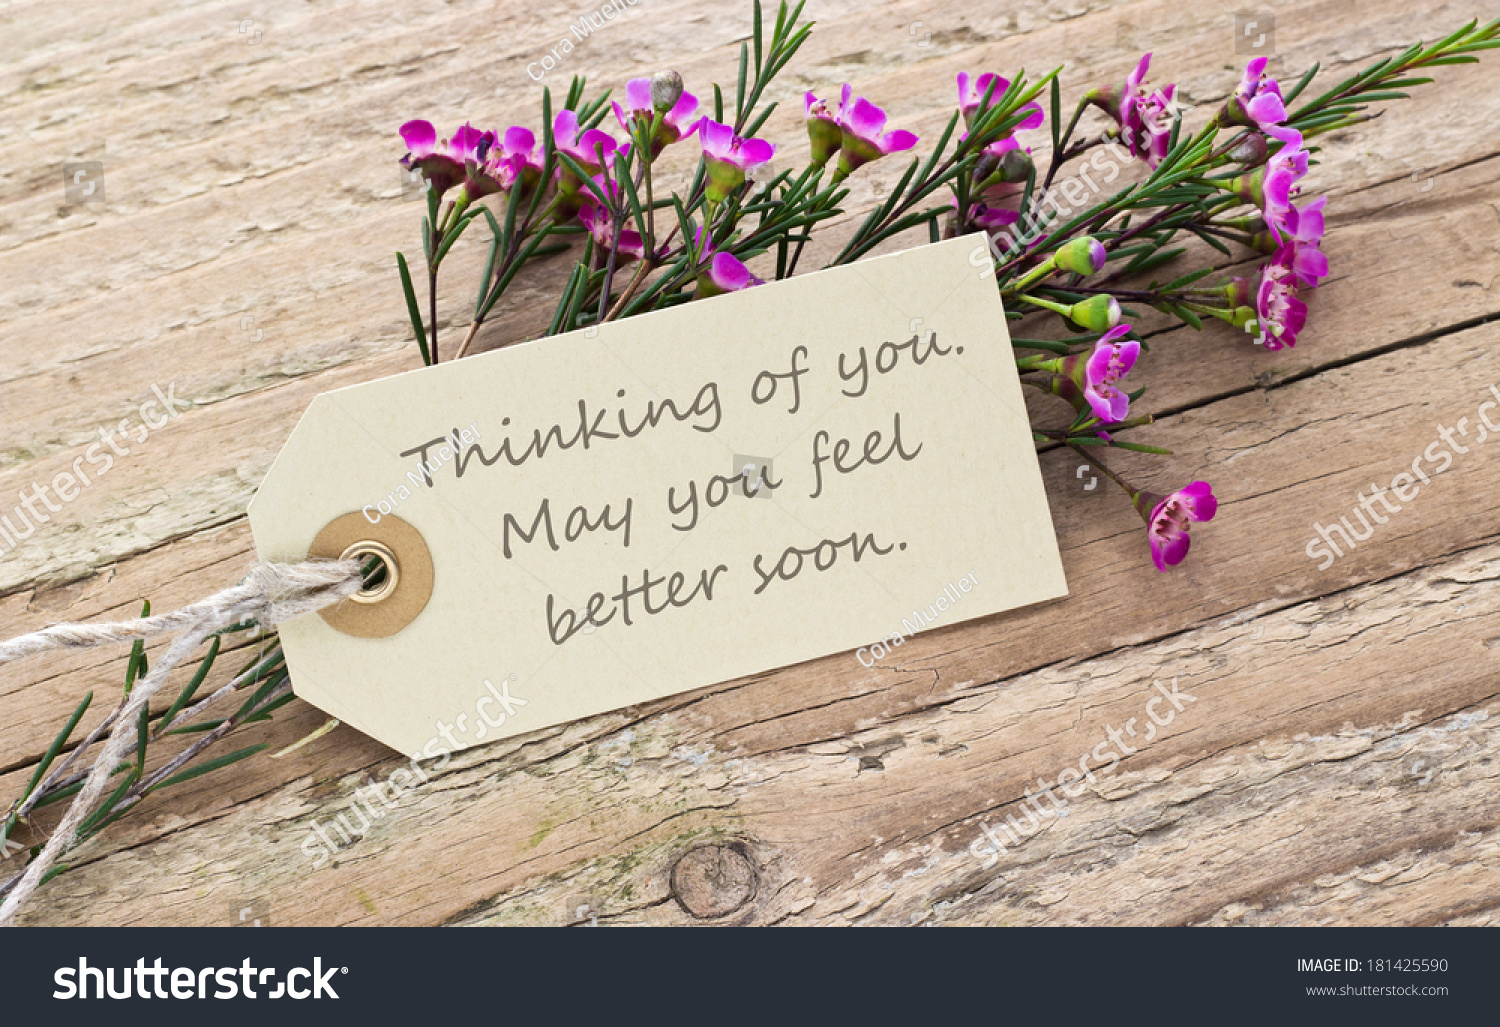 Pink Flower On A Wooden Board With Card Thinking Of You